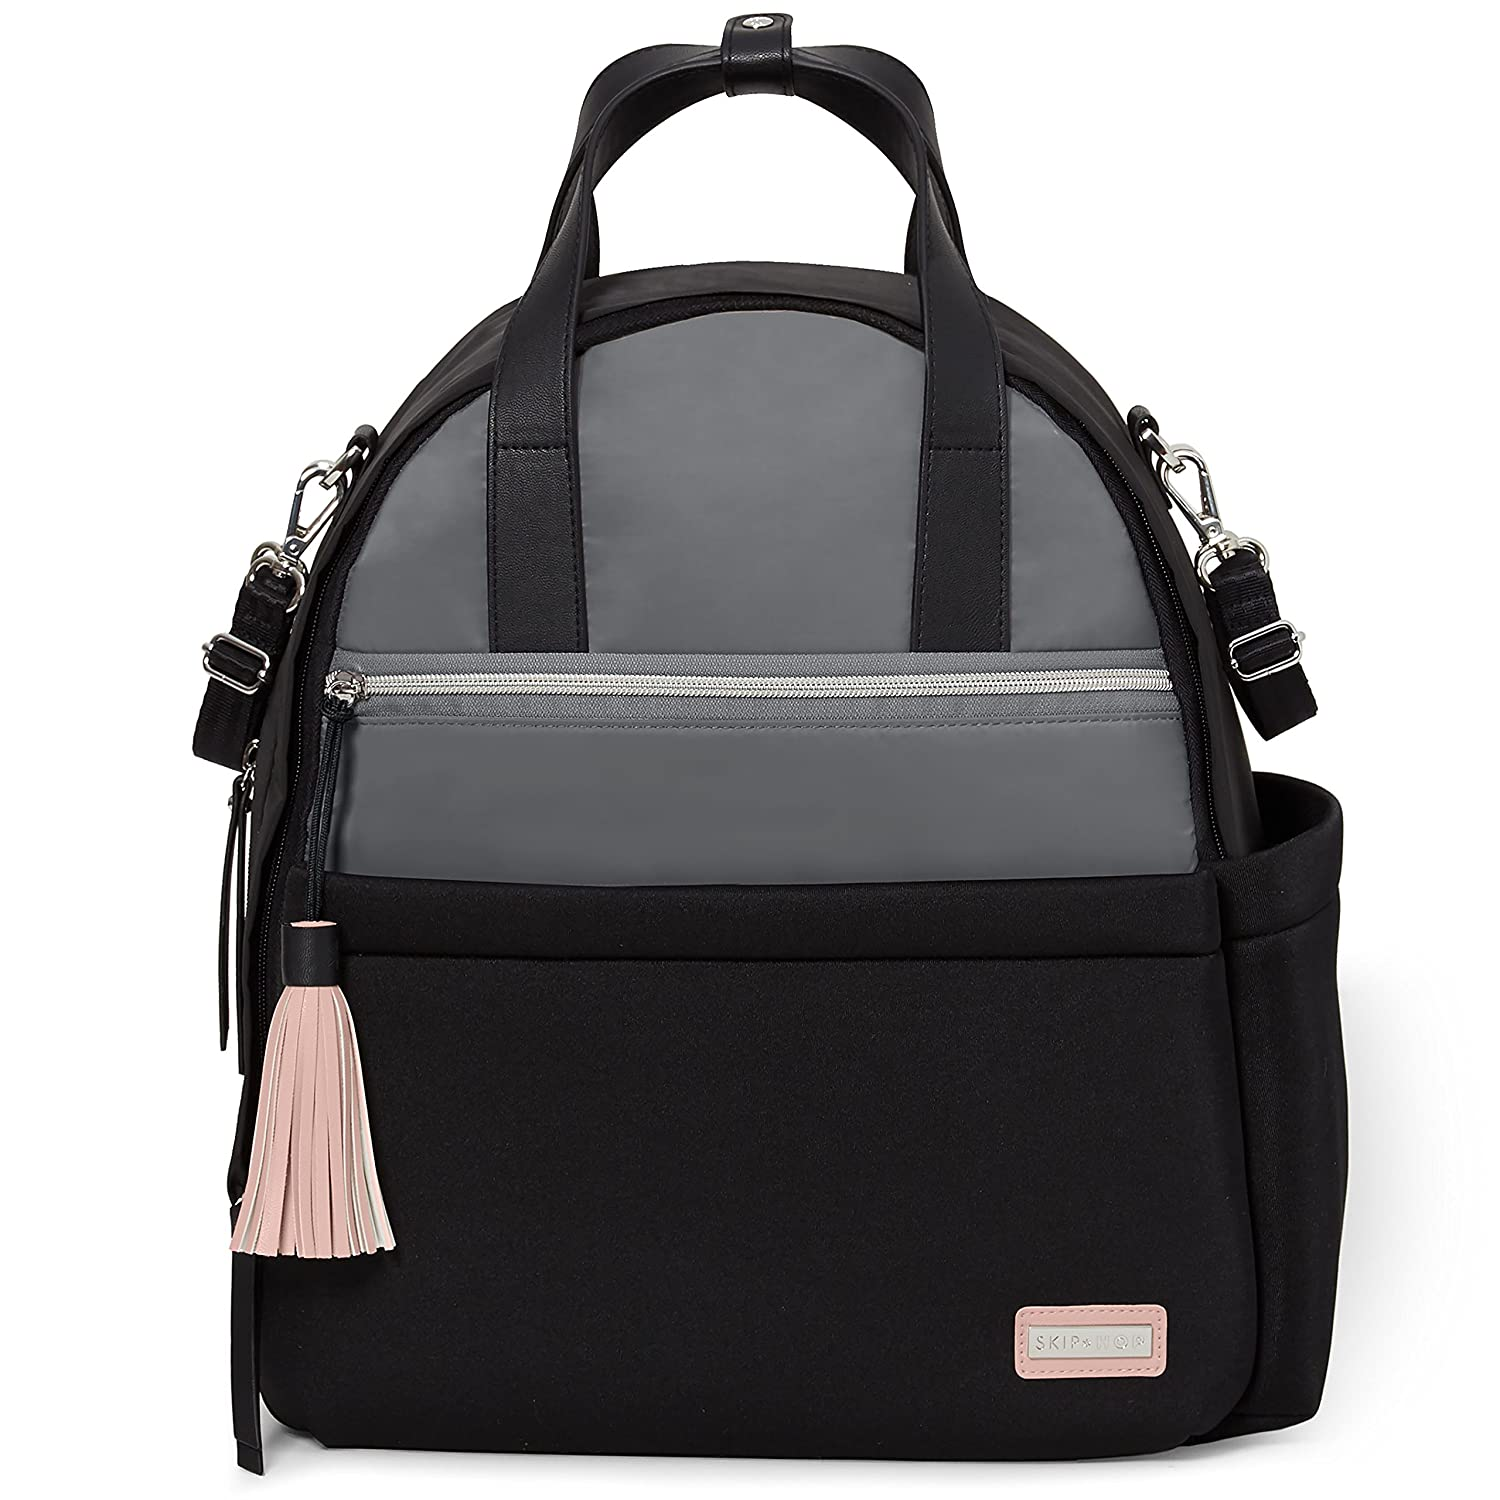 Skip Hop Nolita Neoprene Diaper Backpack - Black/Grey 204301